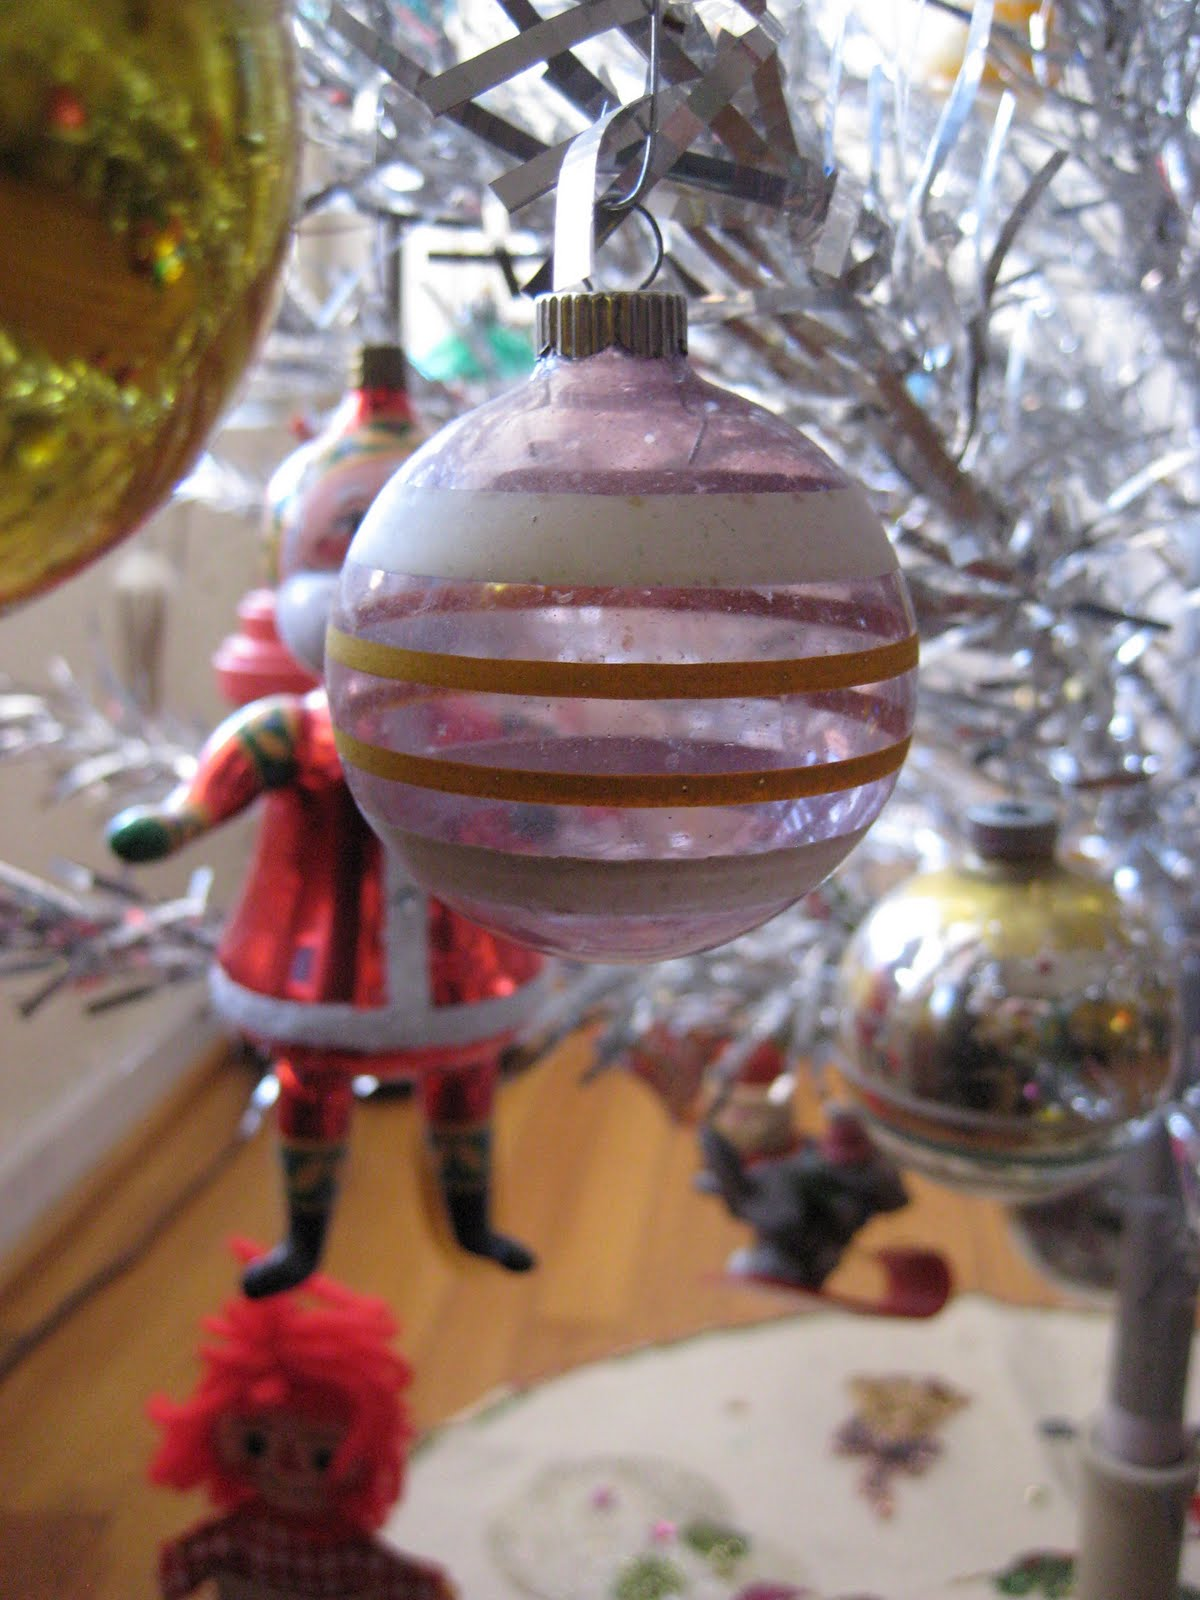 Drama christmas ornaments - This Is One Of My Long Time Favorites Likely A Shiny Brite Dating From The Wwii Era I Recently Learned Of The Company S Practice Of Painted Stripes On